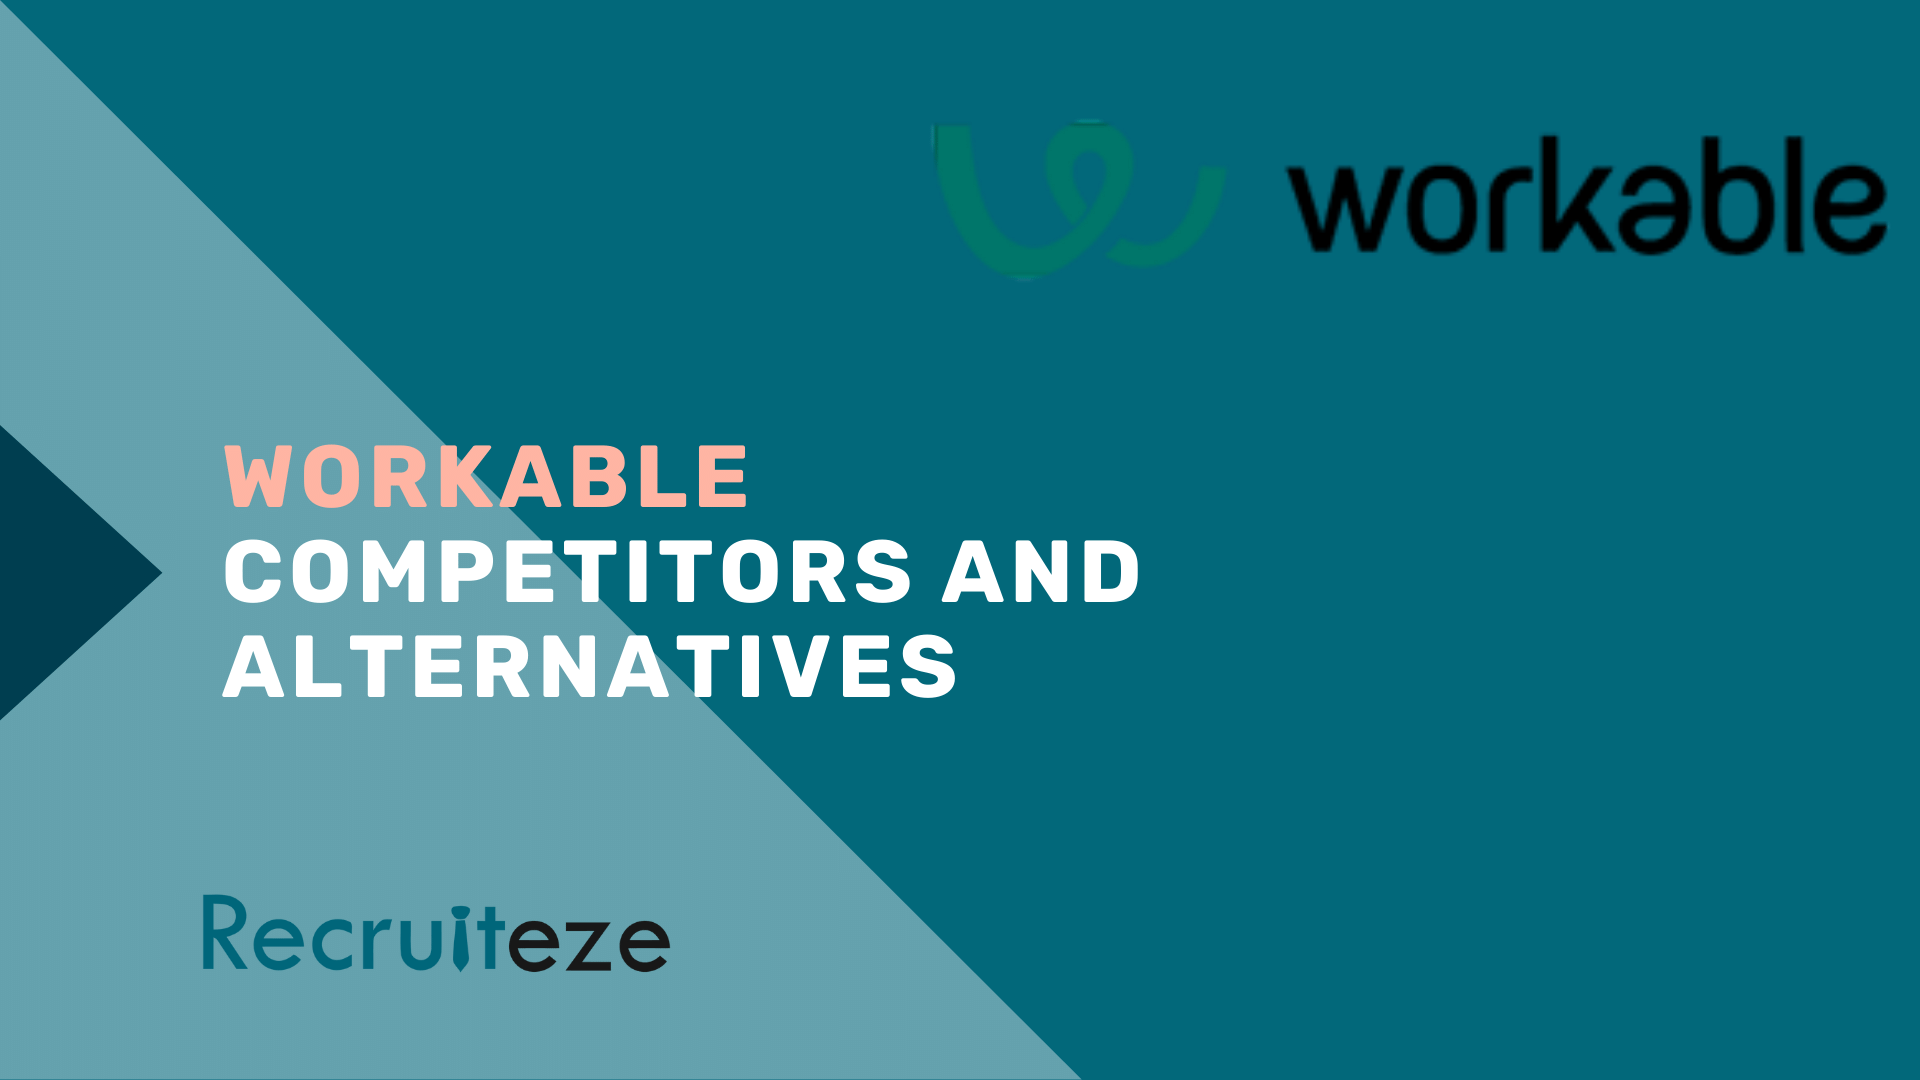 Workable Alternatives and Competitors